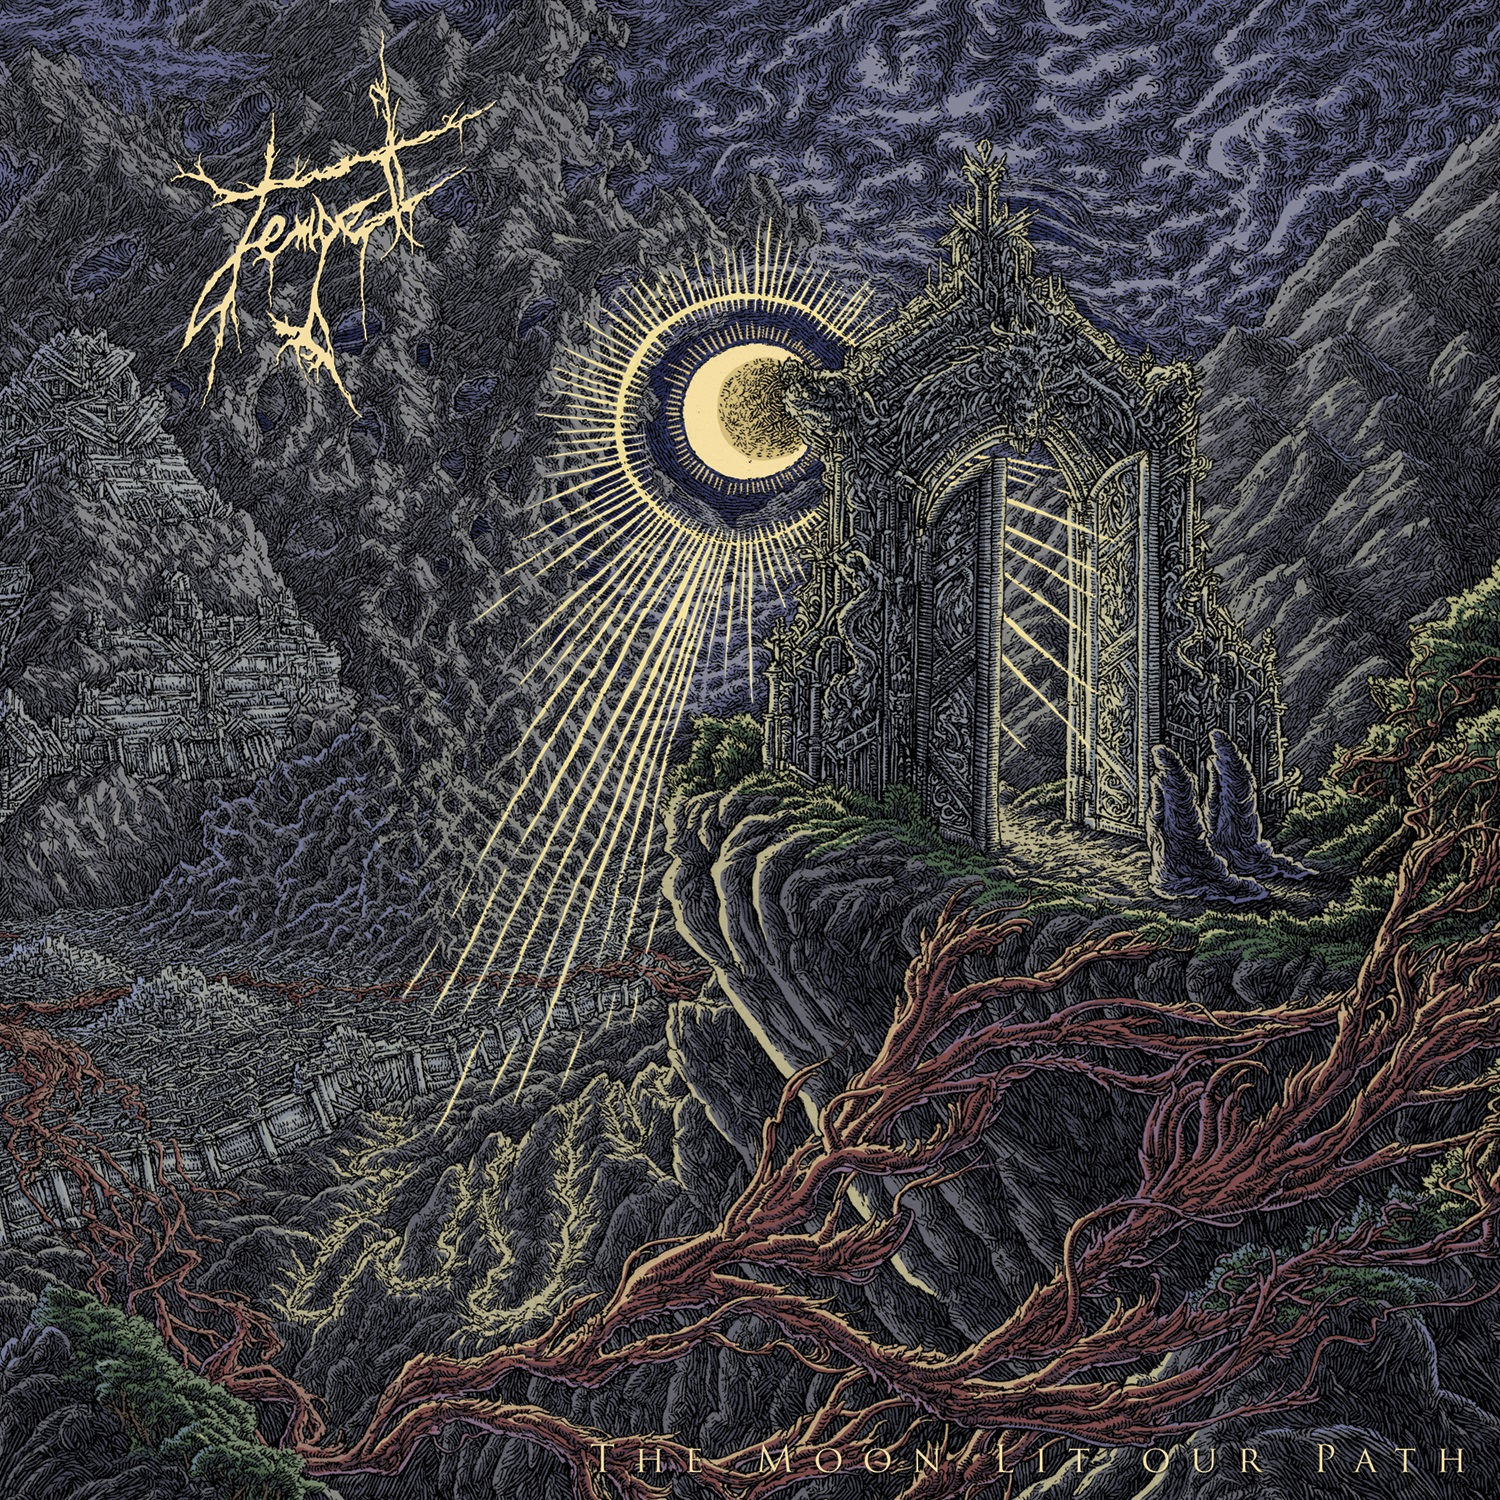 Tempel – The Moon Lit Our Path Review